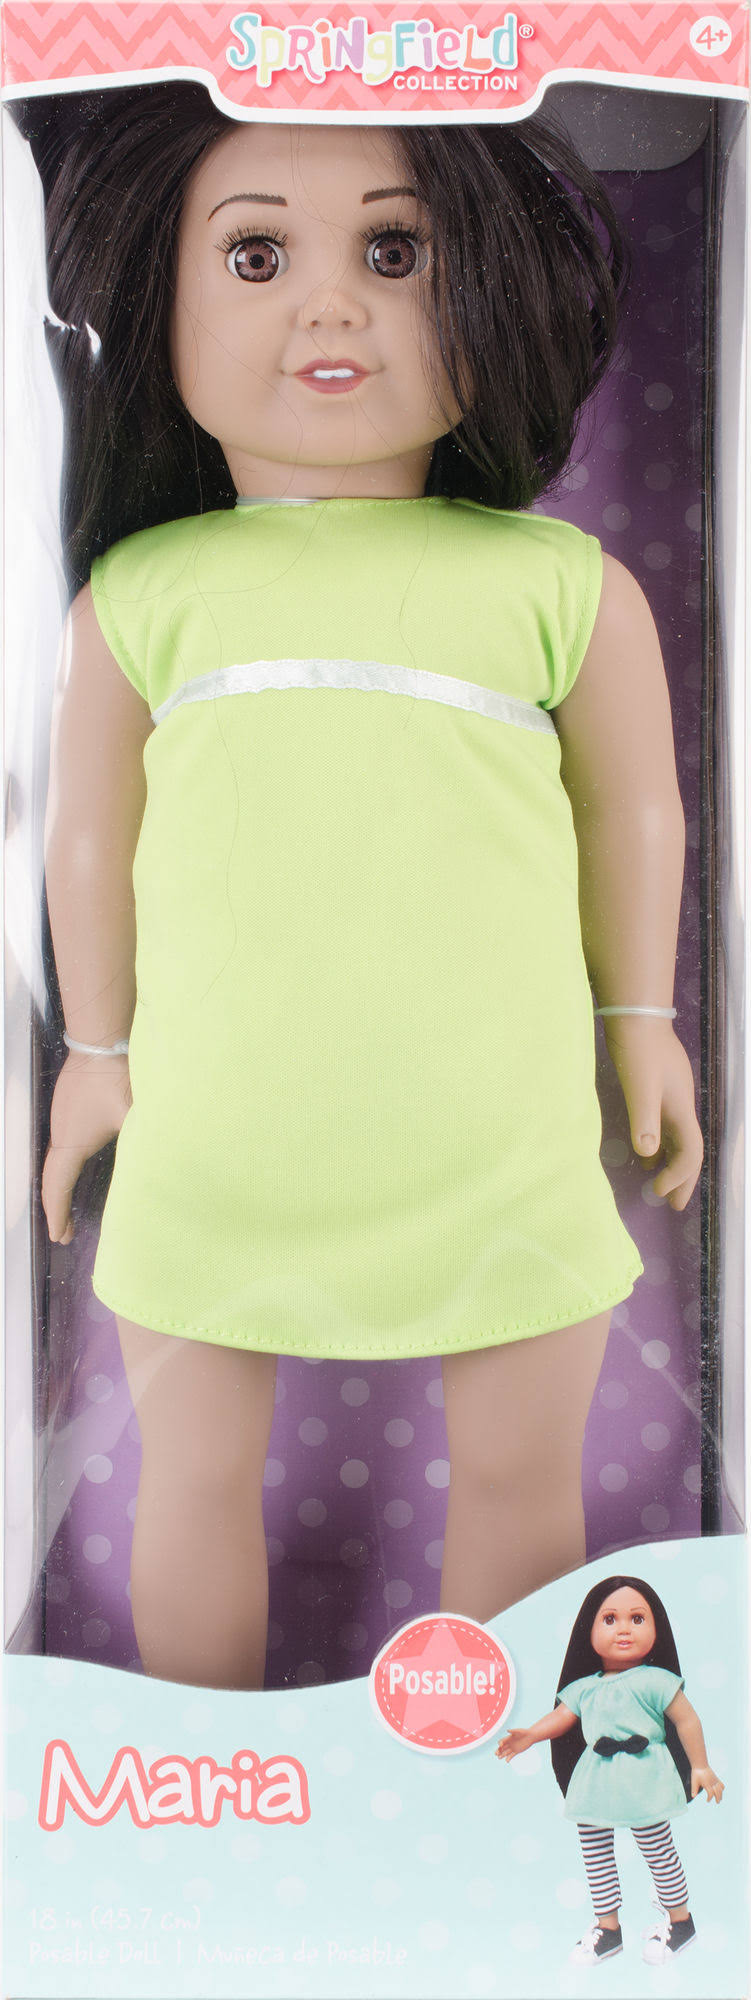 Fibre Craft 7090F-T Springfield Collection Pre-Stuffed Doll - 18""